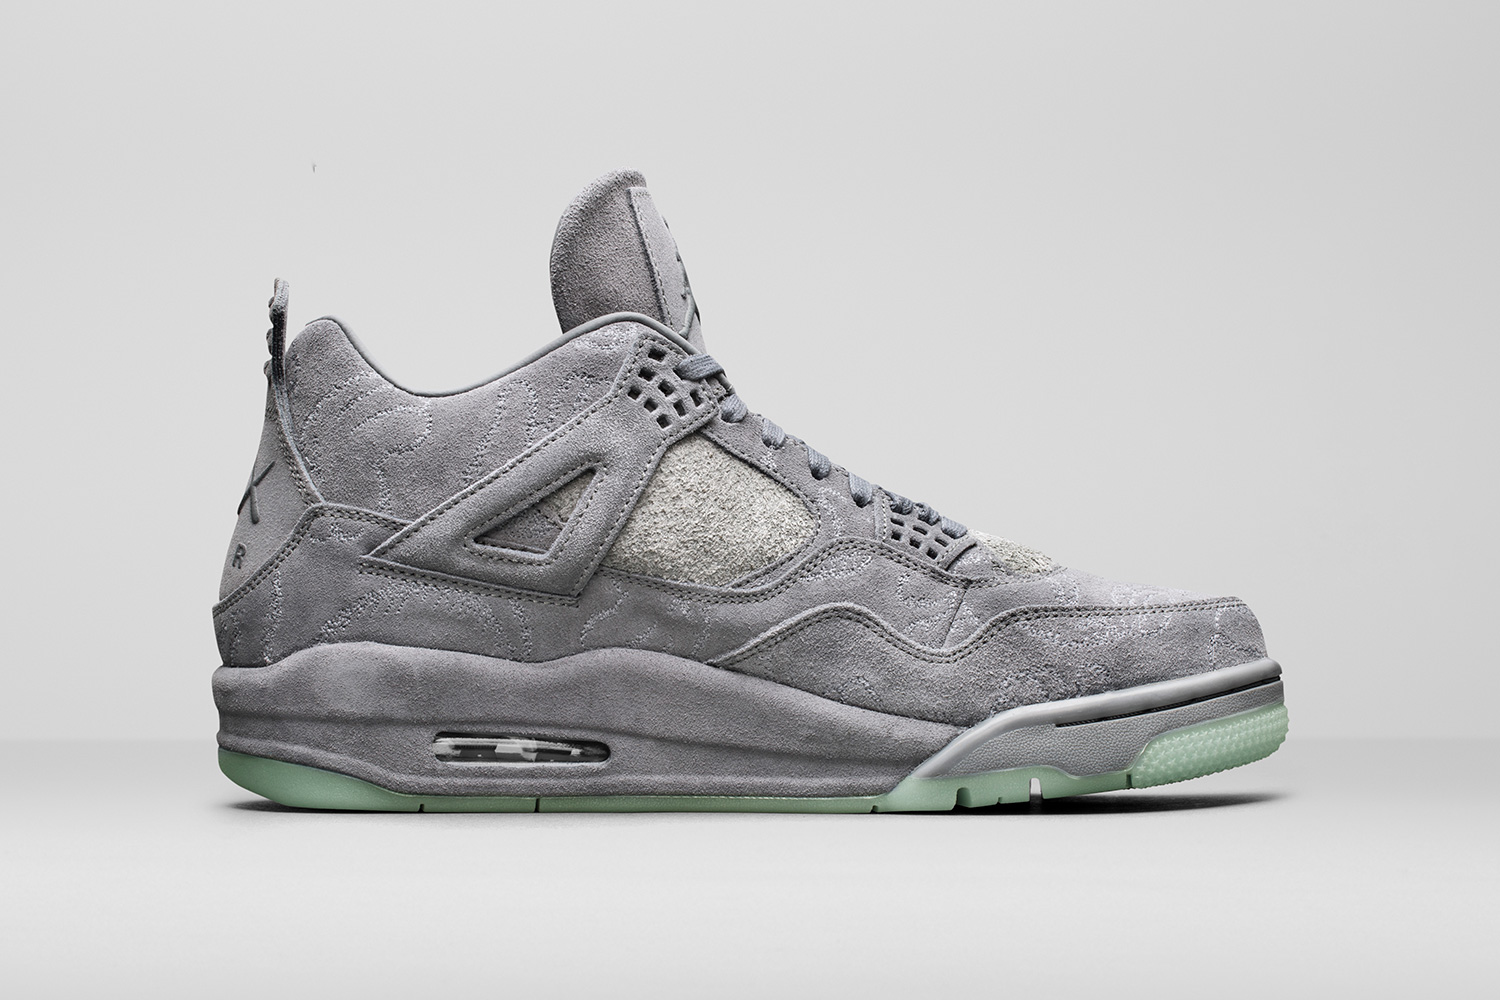 kaws-air-jordan-4-official-images-02